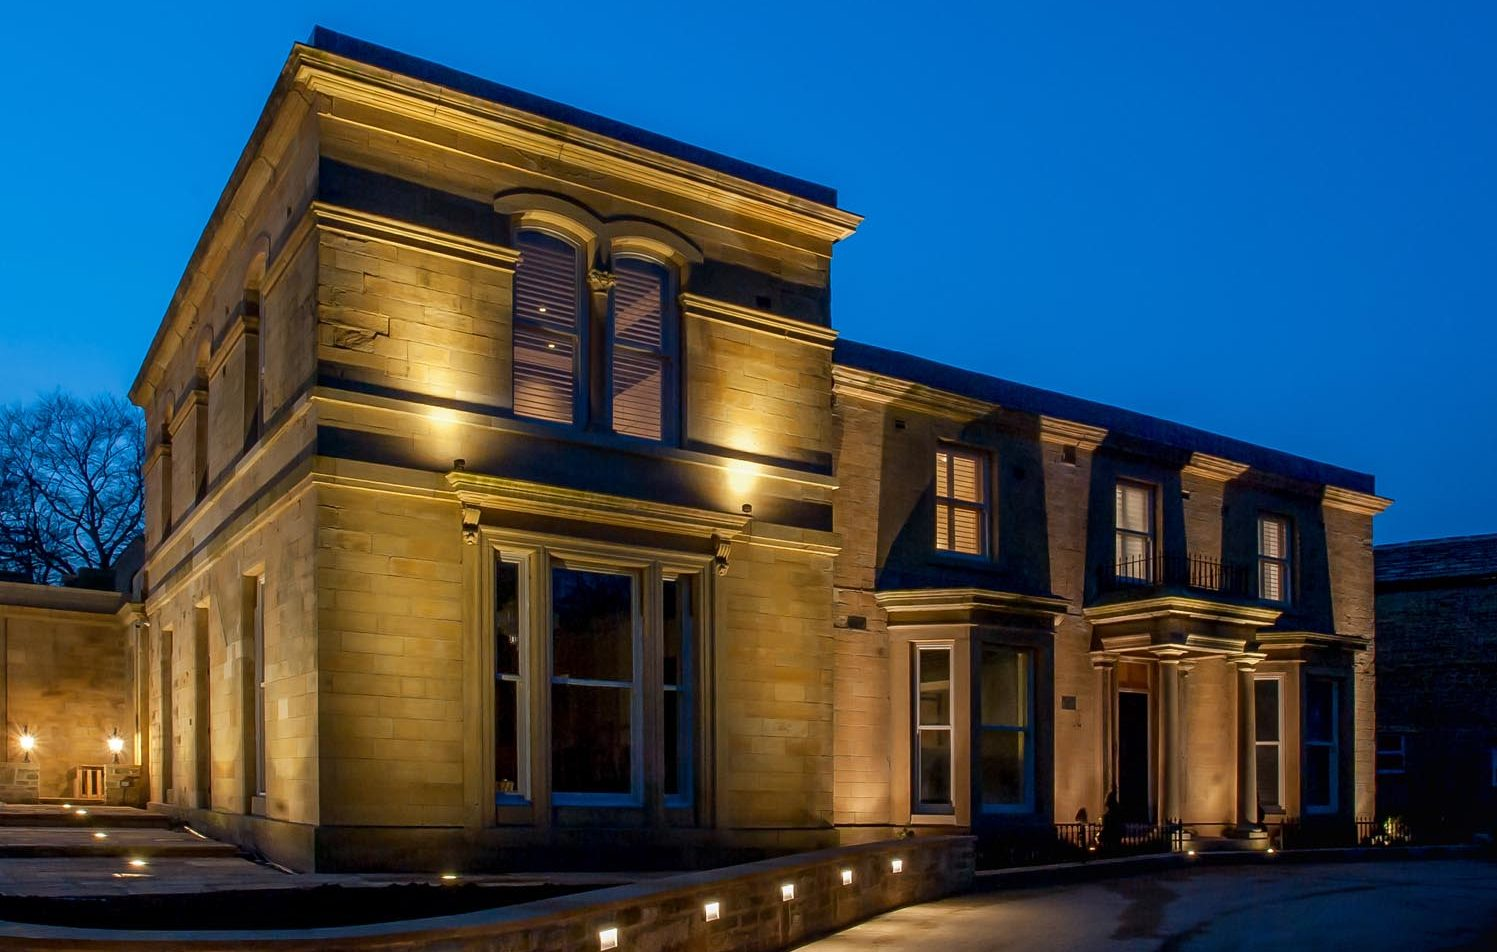 The Manor Hotel, Lindley, Huddersfield, West Yorkshire.